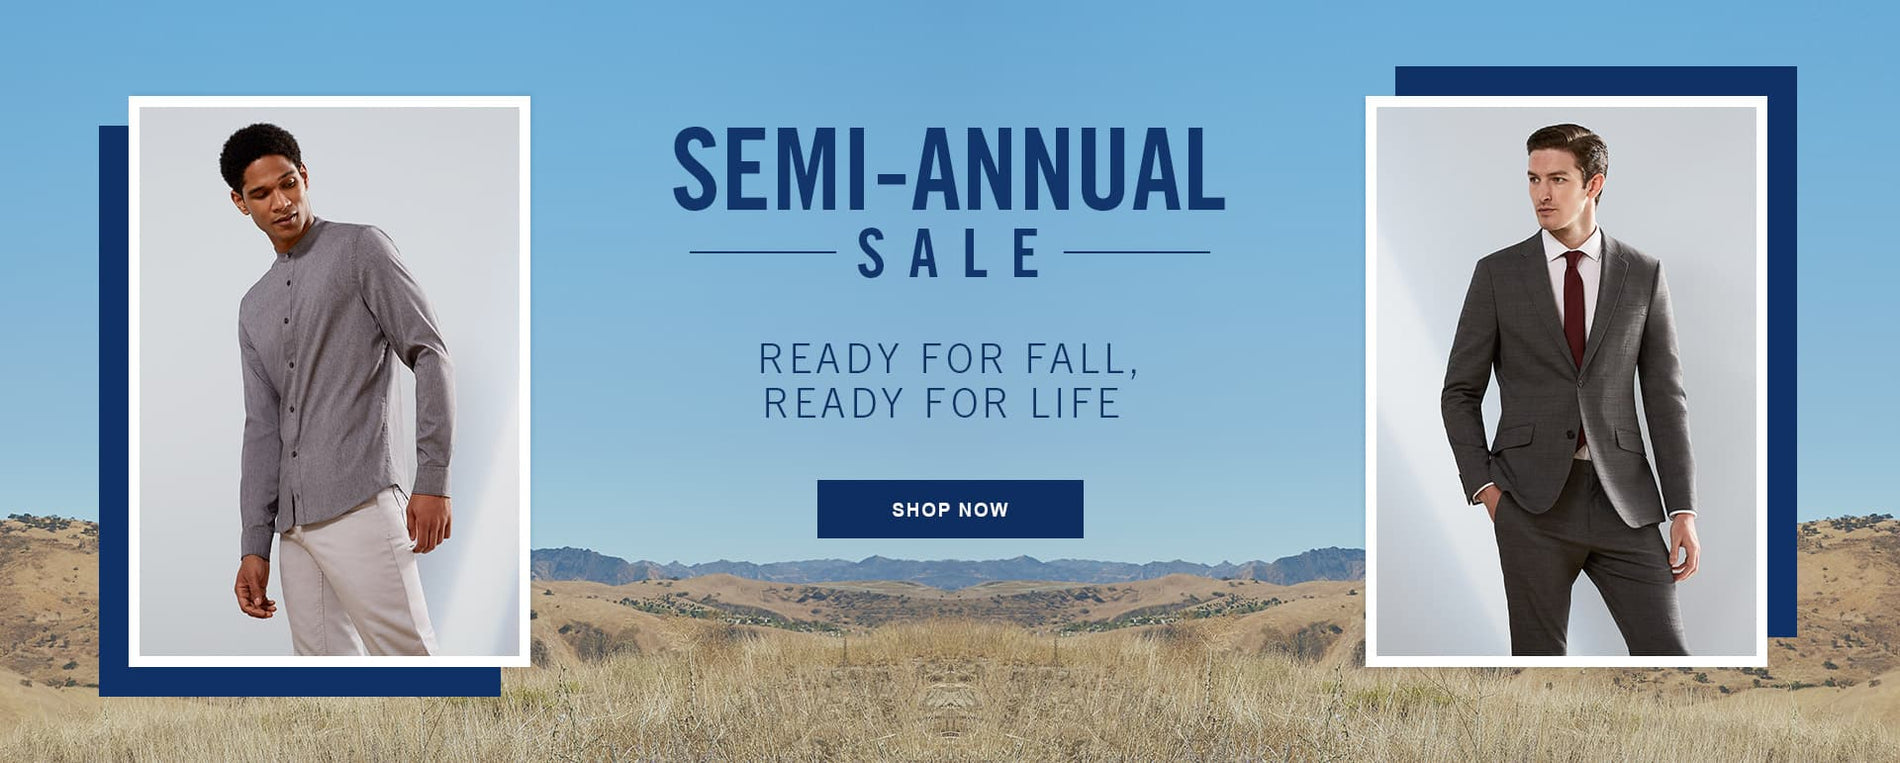 SEMI ANNUAL SALE | SHOP NOW